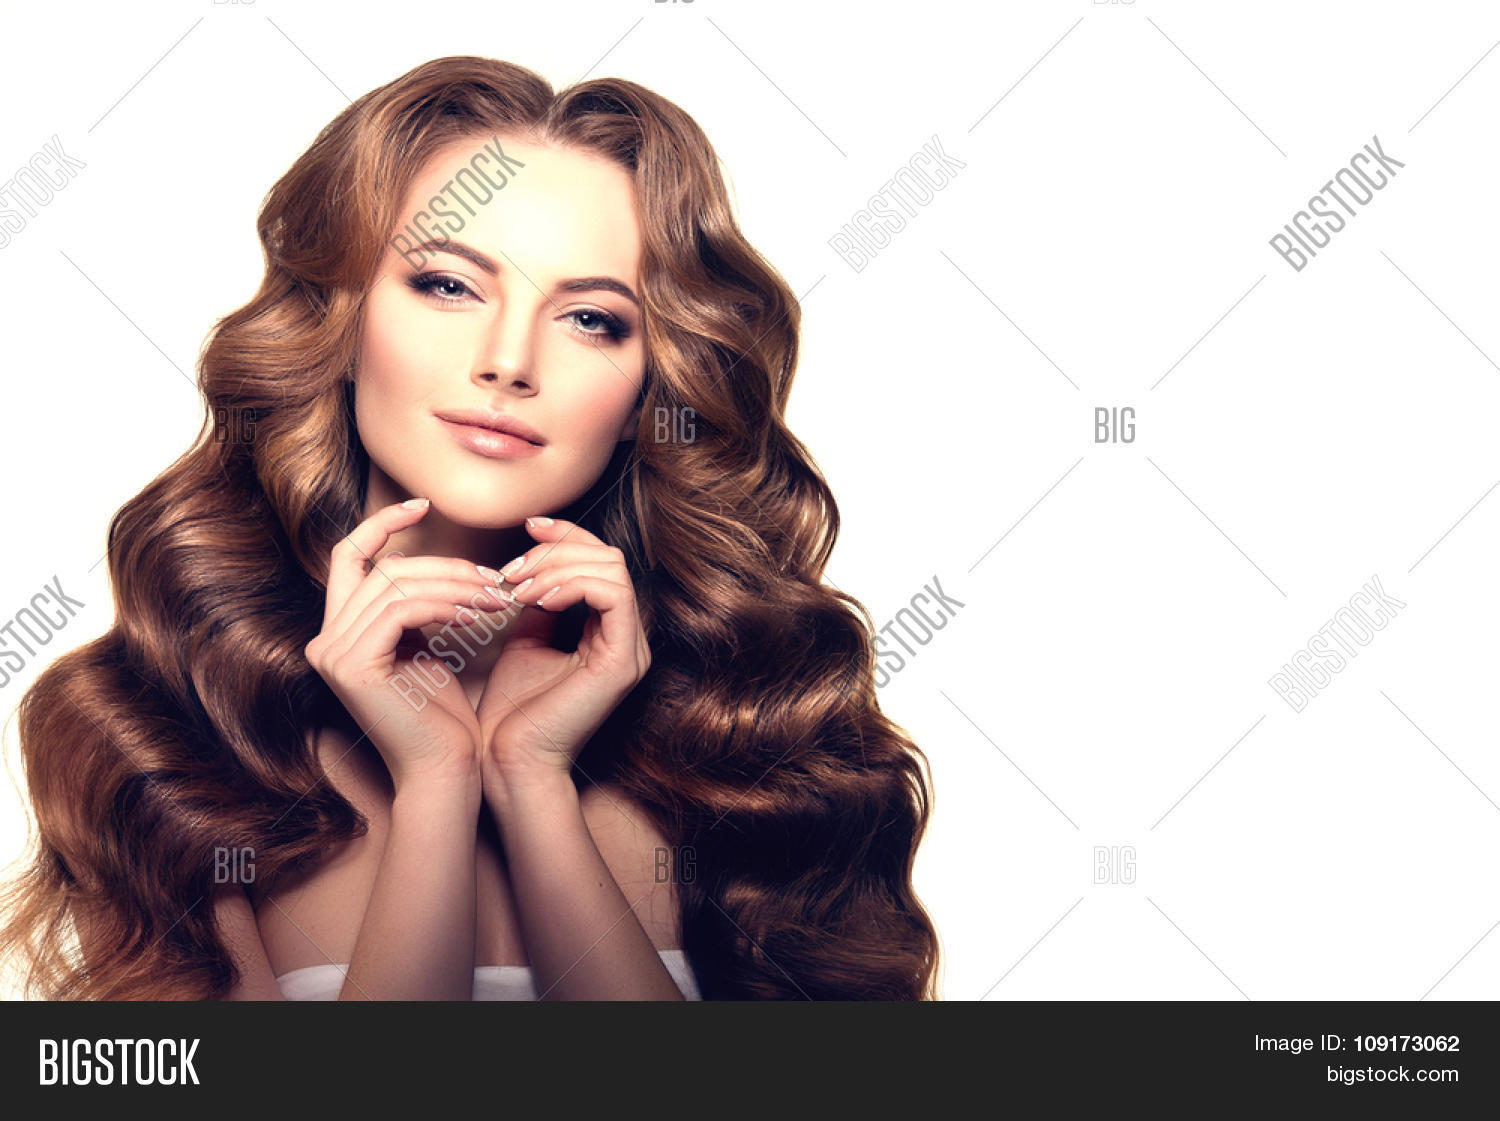 Model Long Hair Waves Image Photo Free Trial Bigstock